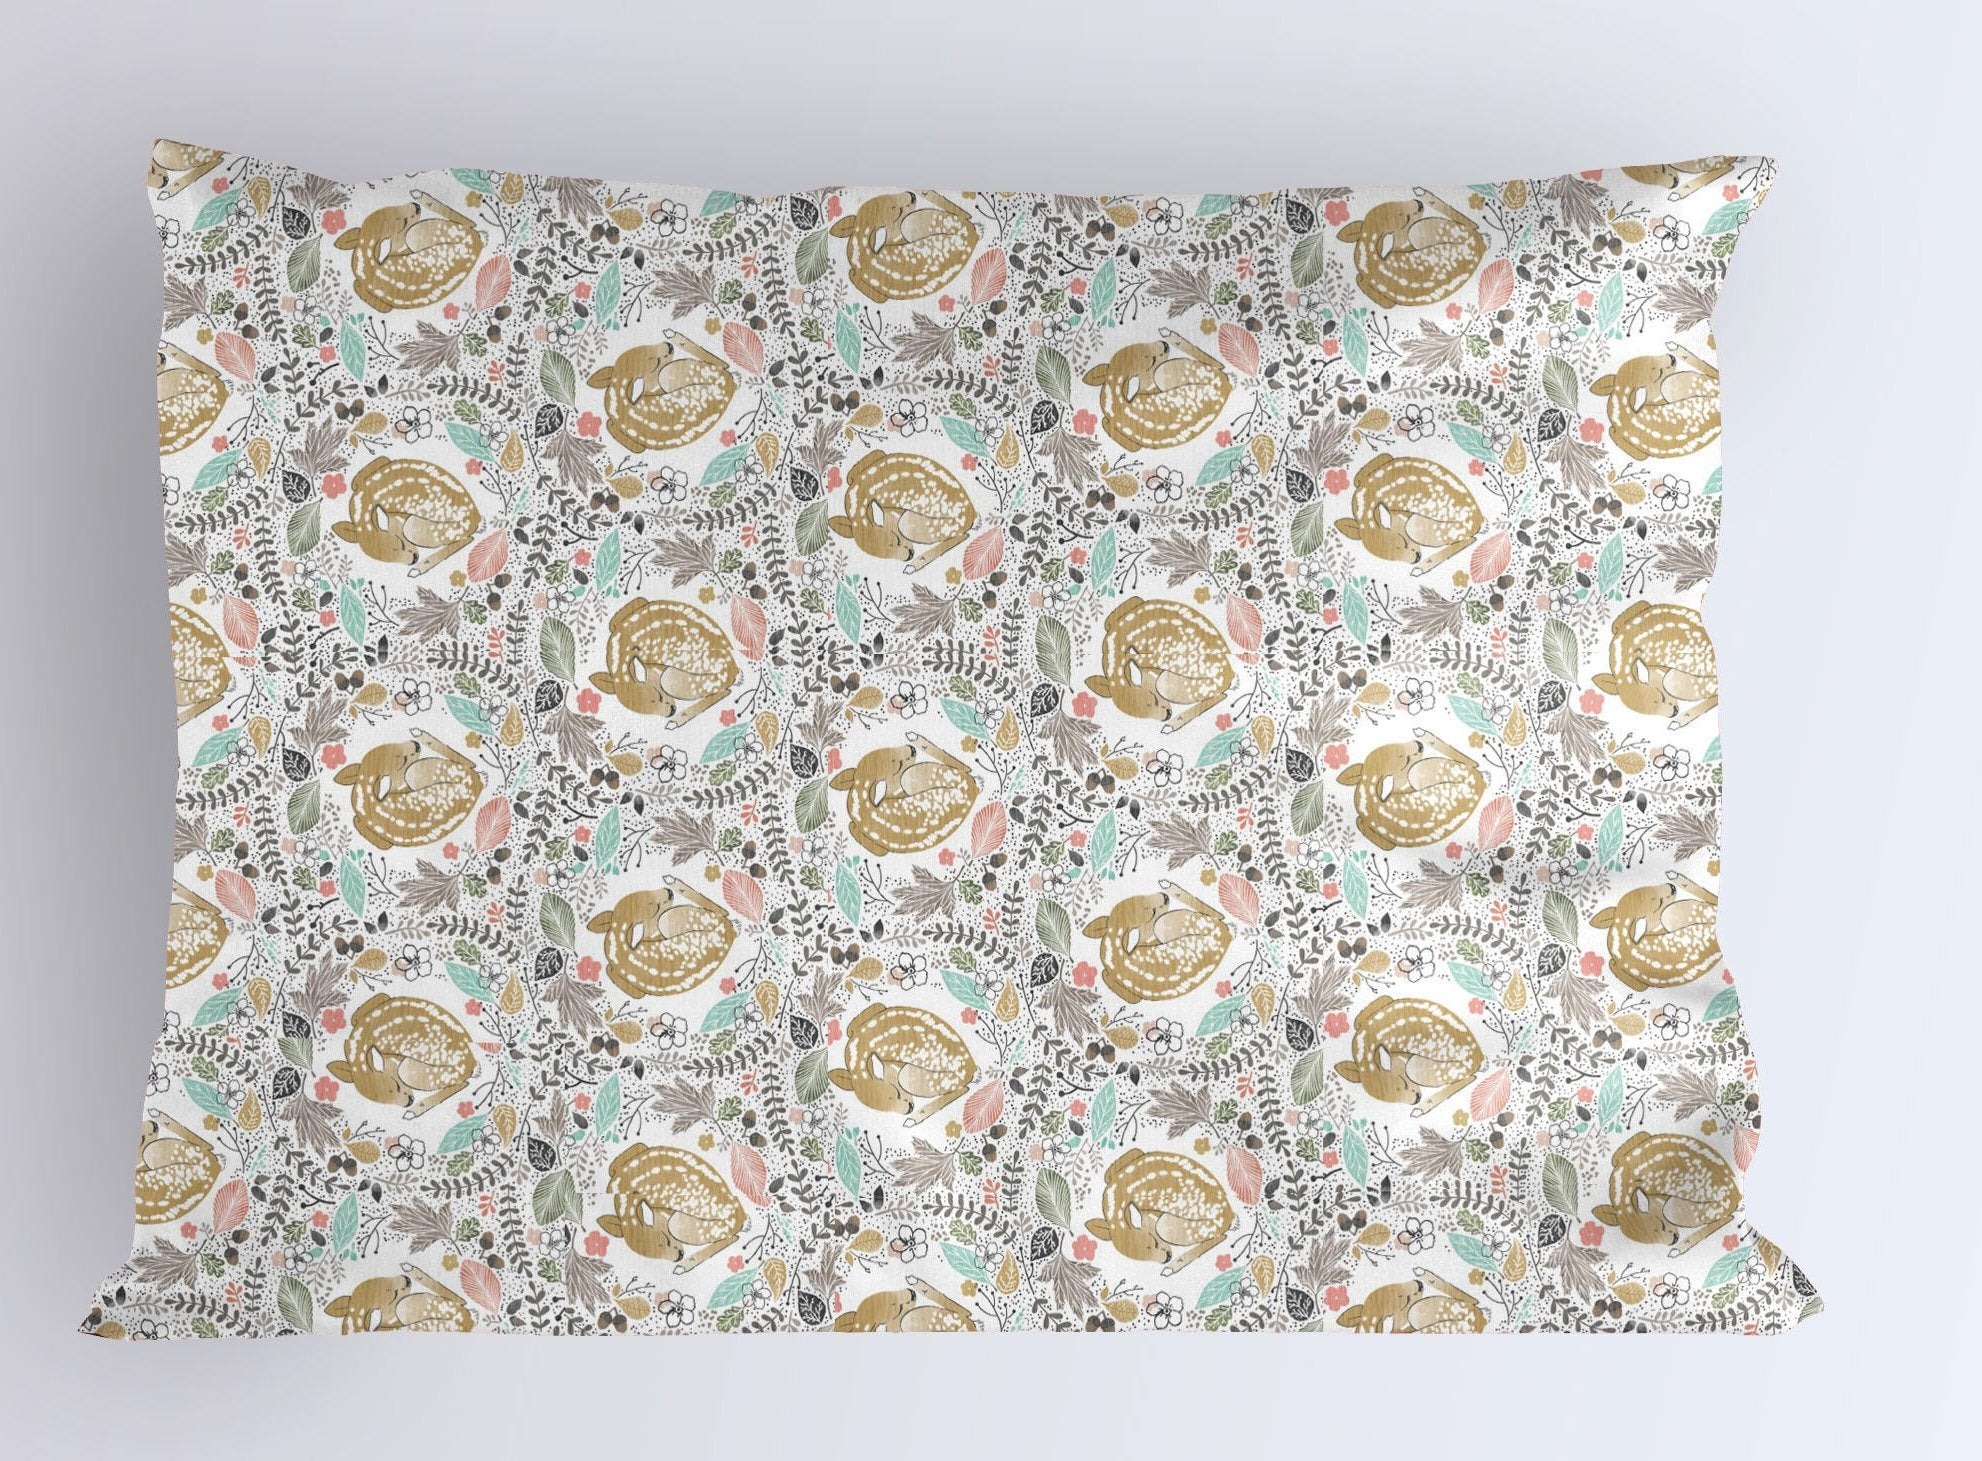 Deer Pillow Case - Fawn Pillowcase - Buck Queen Pillow- King Pillowcase- Kids Summer Bedding- Woodland Toddler Pillow Covers - Dorm Decor - Orange Blossom Special  @orangeblossomspecial805